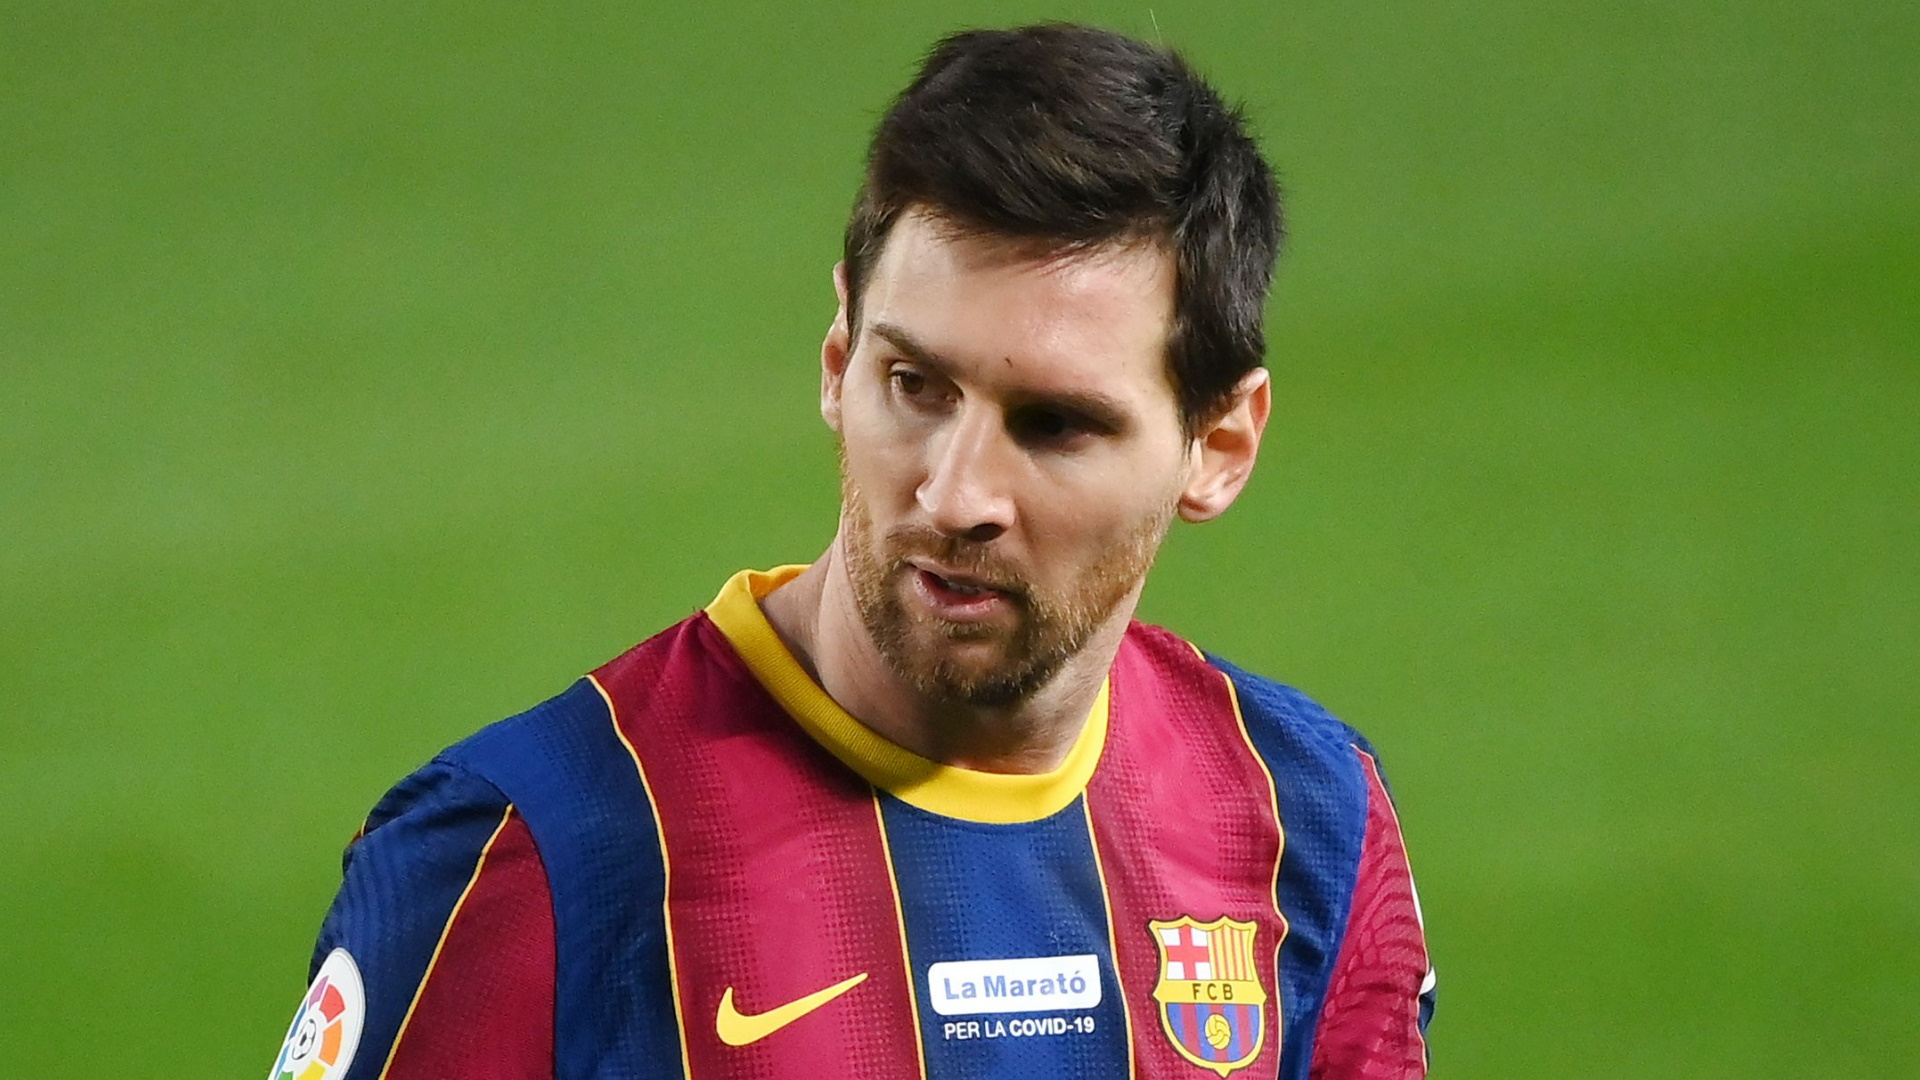 'I would enjoy the United States' - Messi hints at MLS move if he leaves Barcelona